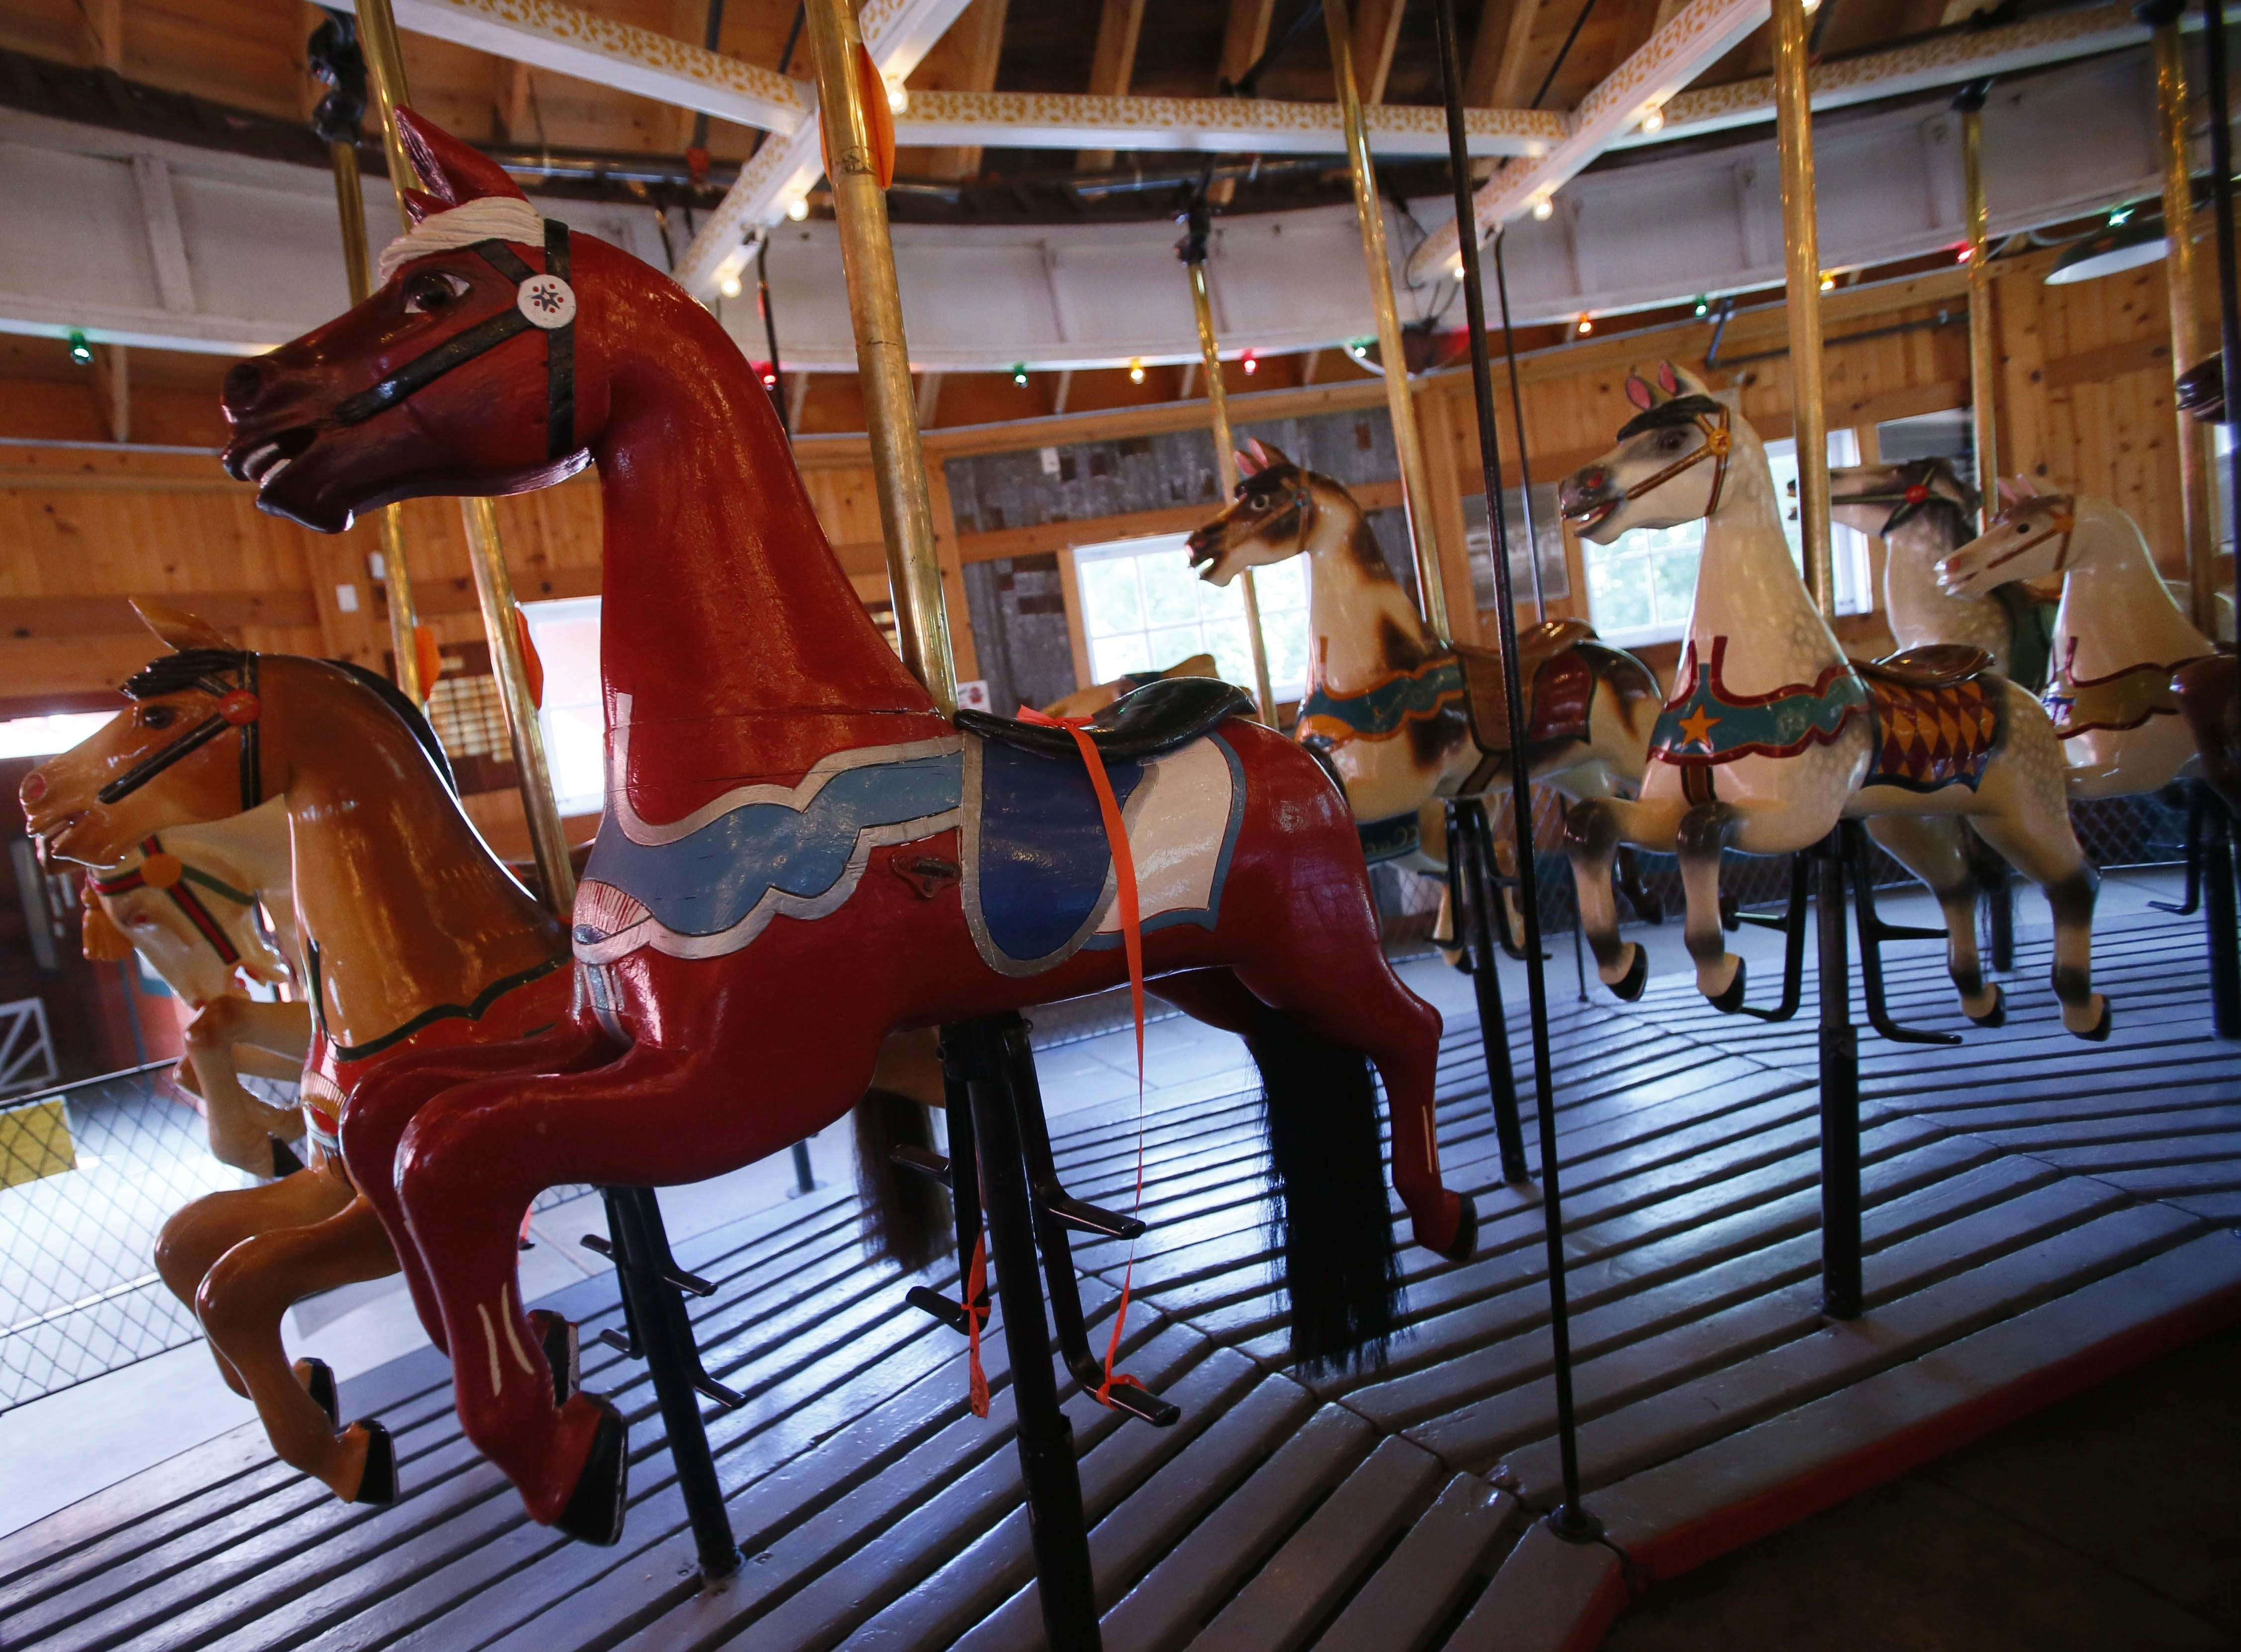 The historic carousel at the Herschell Carrousel Factory Museum in North Tonawanda is out of commission until it receives needed repairs.